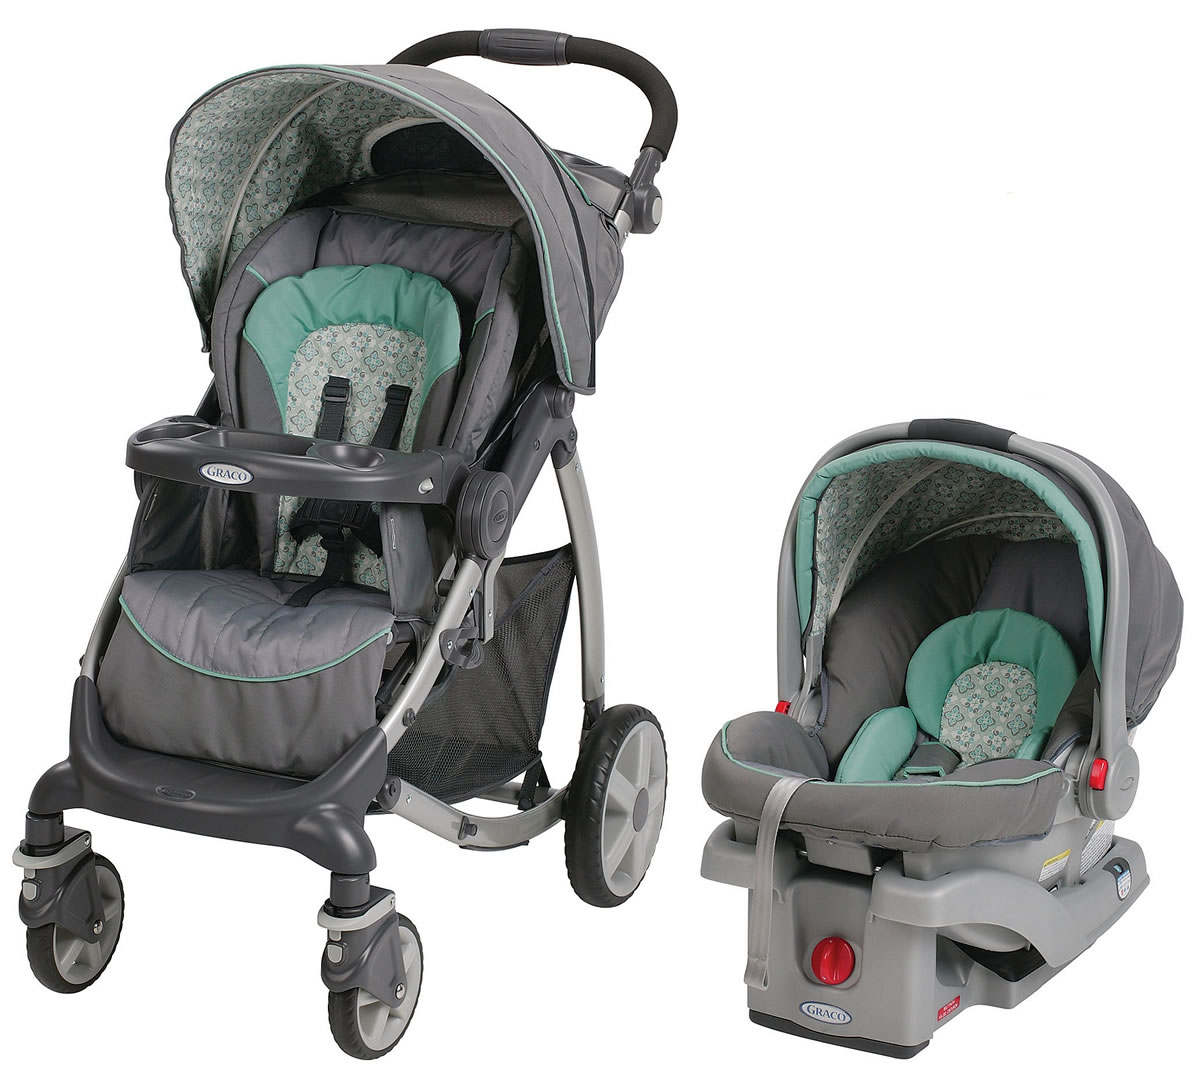 Lummy Snugride Click Connect 30 Winslet 23 Graco Snugride Click Connect 35 Recall Graco Snugride Click Connect 35 Stroller Graco Stylus Travel System baby Graco Snugride Click Connect